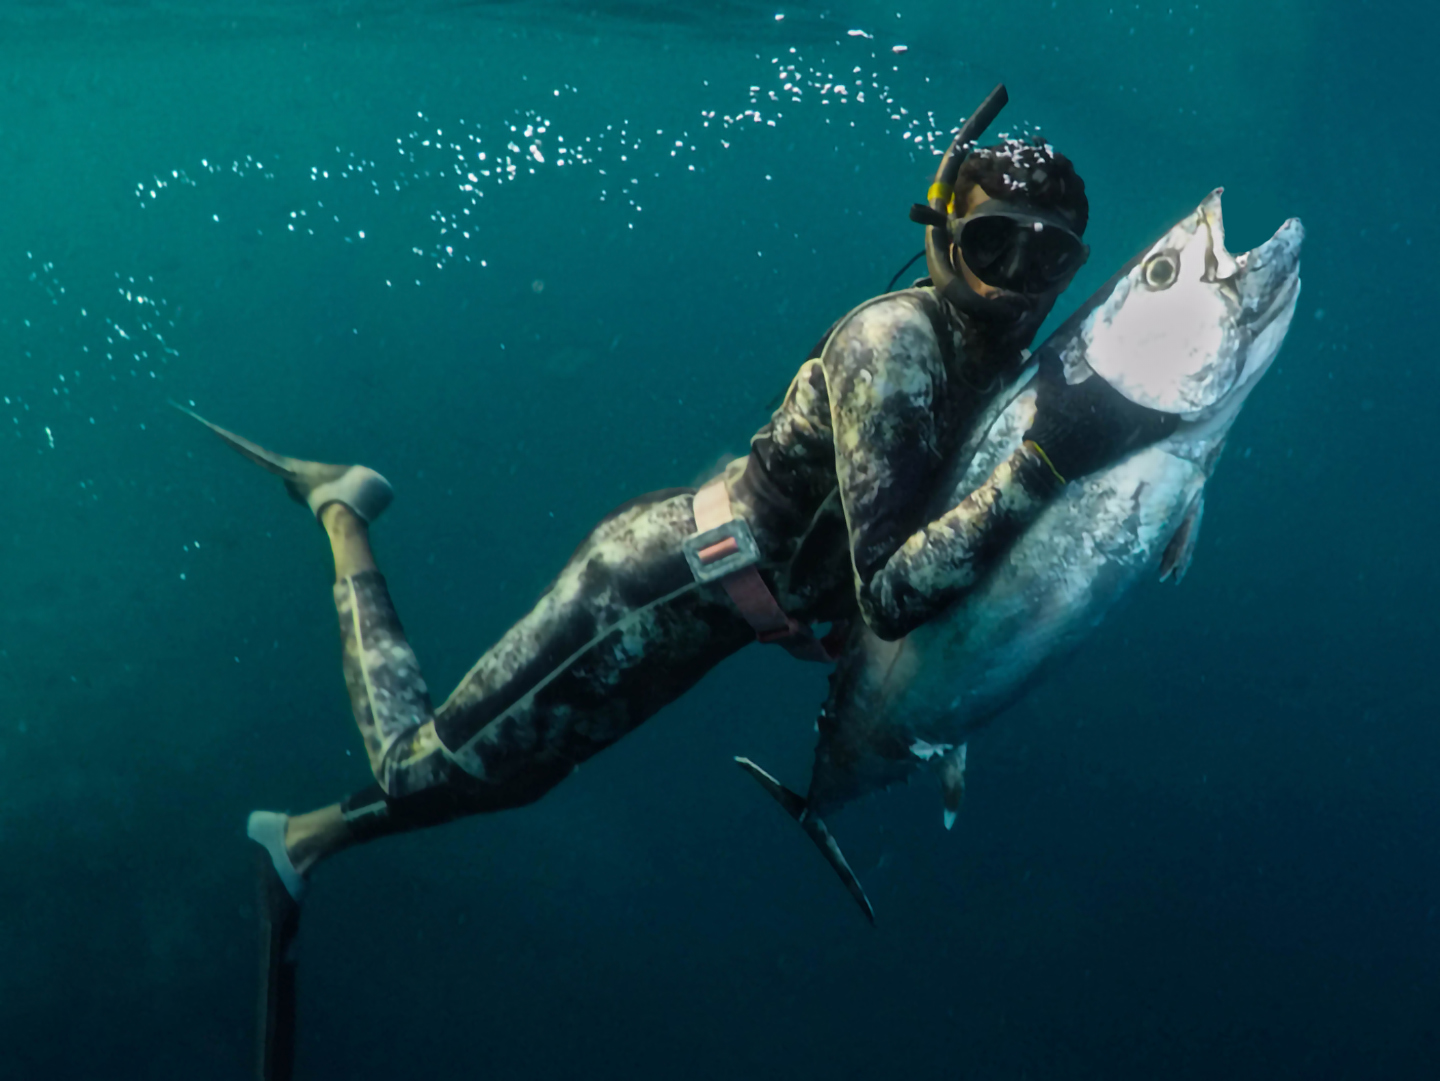 An underwater image of a diver with a Tuna after catching it with a spear